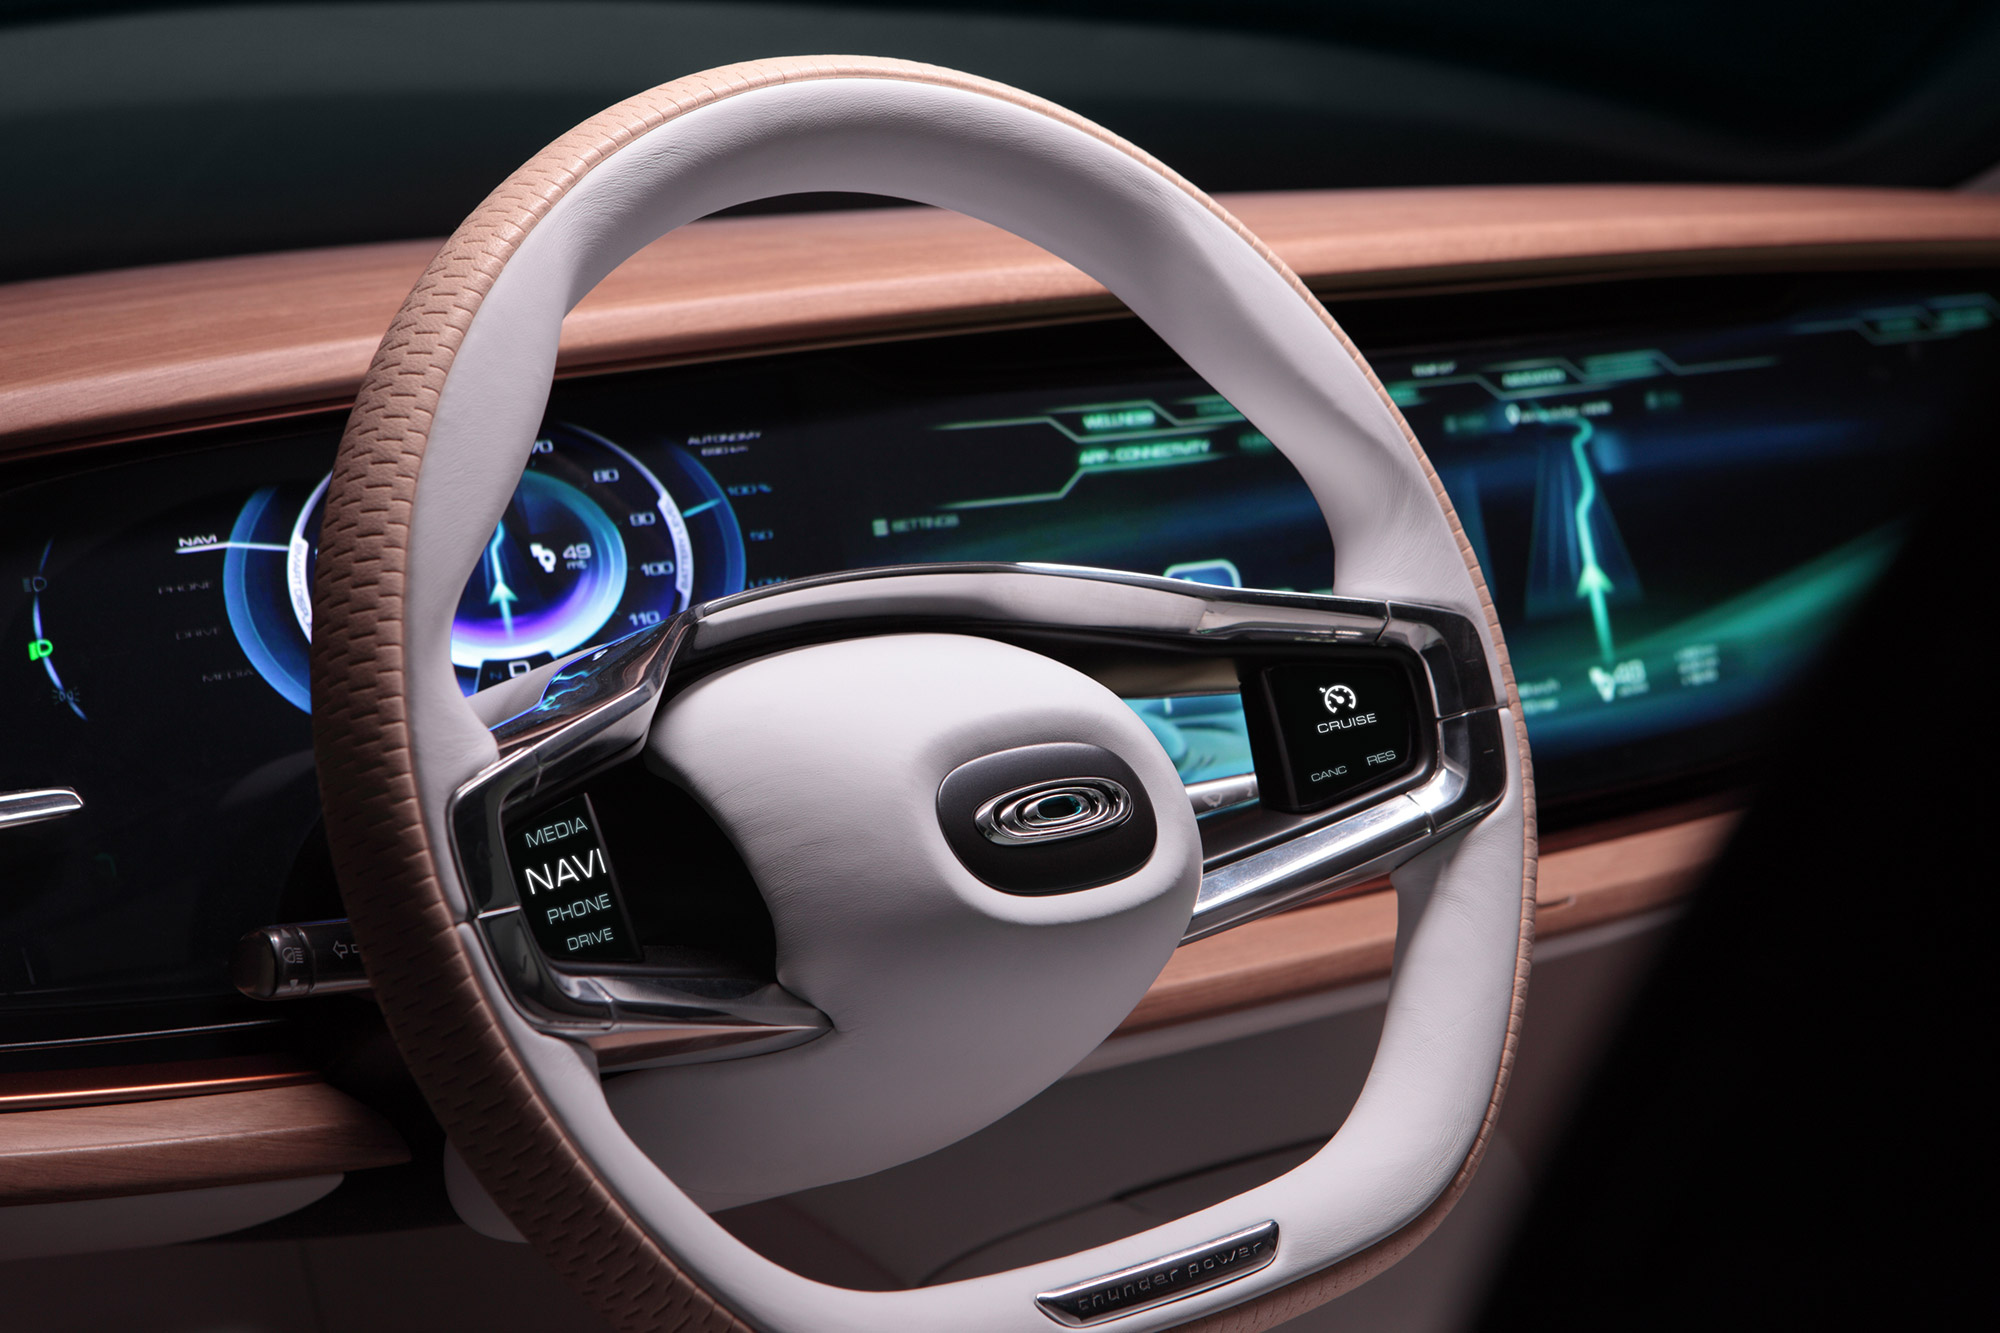 The interior looks very good and the cigar-shaped LED console with it's touch screen capability looks packed to the rafters with the latest technology